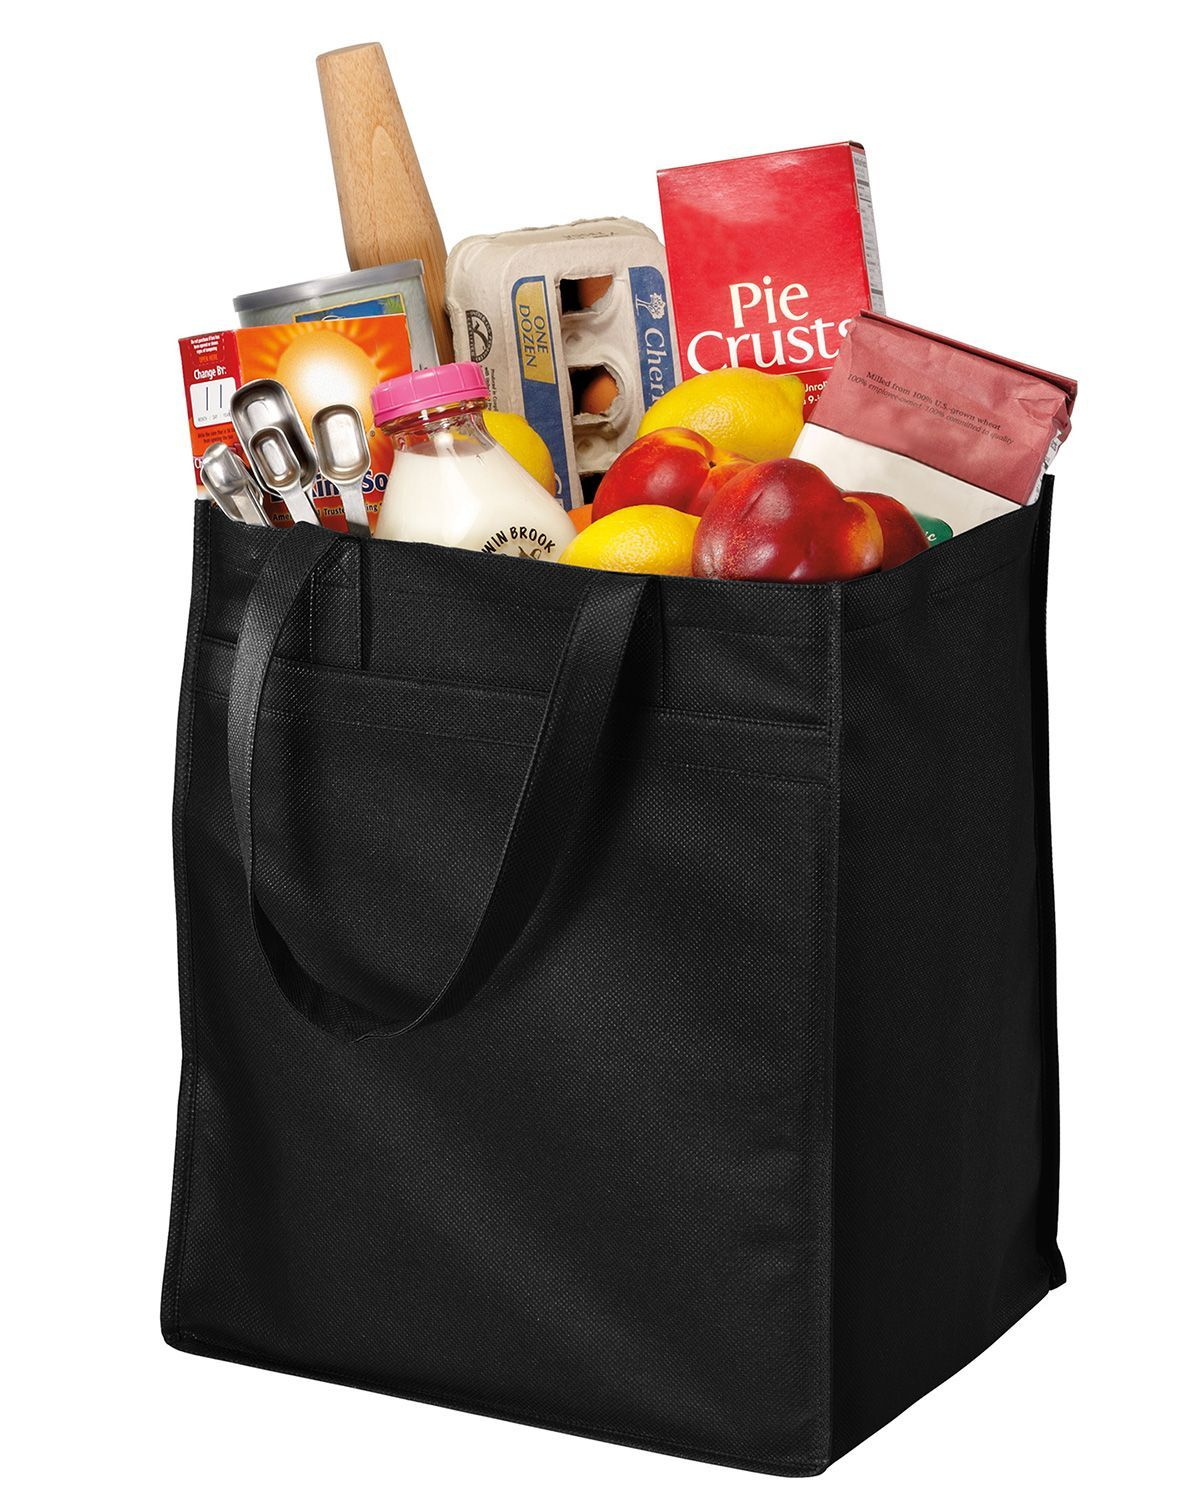 Port Authority B160 Extra Wide Polypropylene Grocery Tote